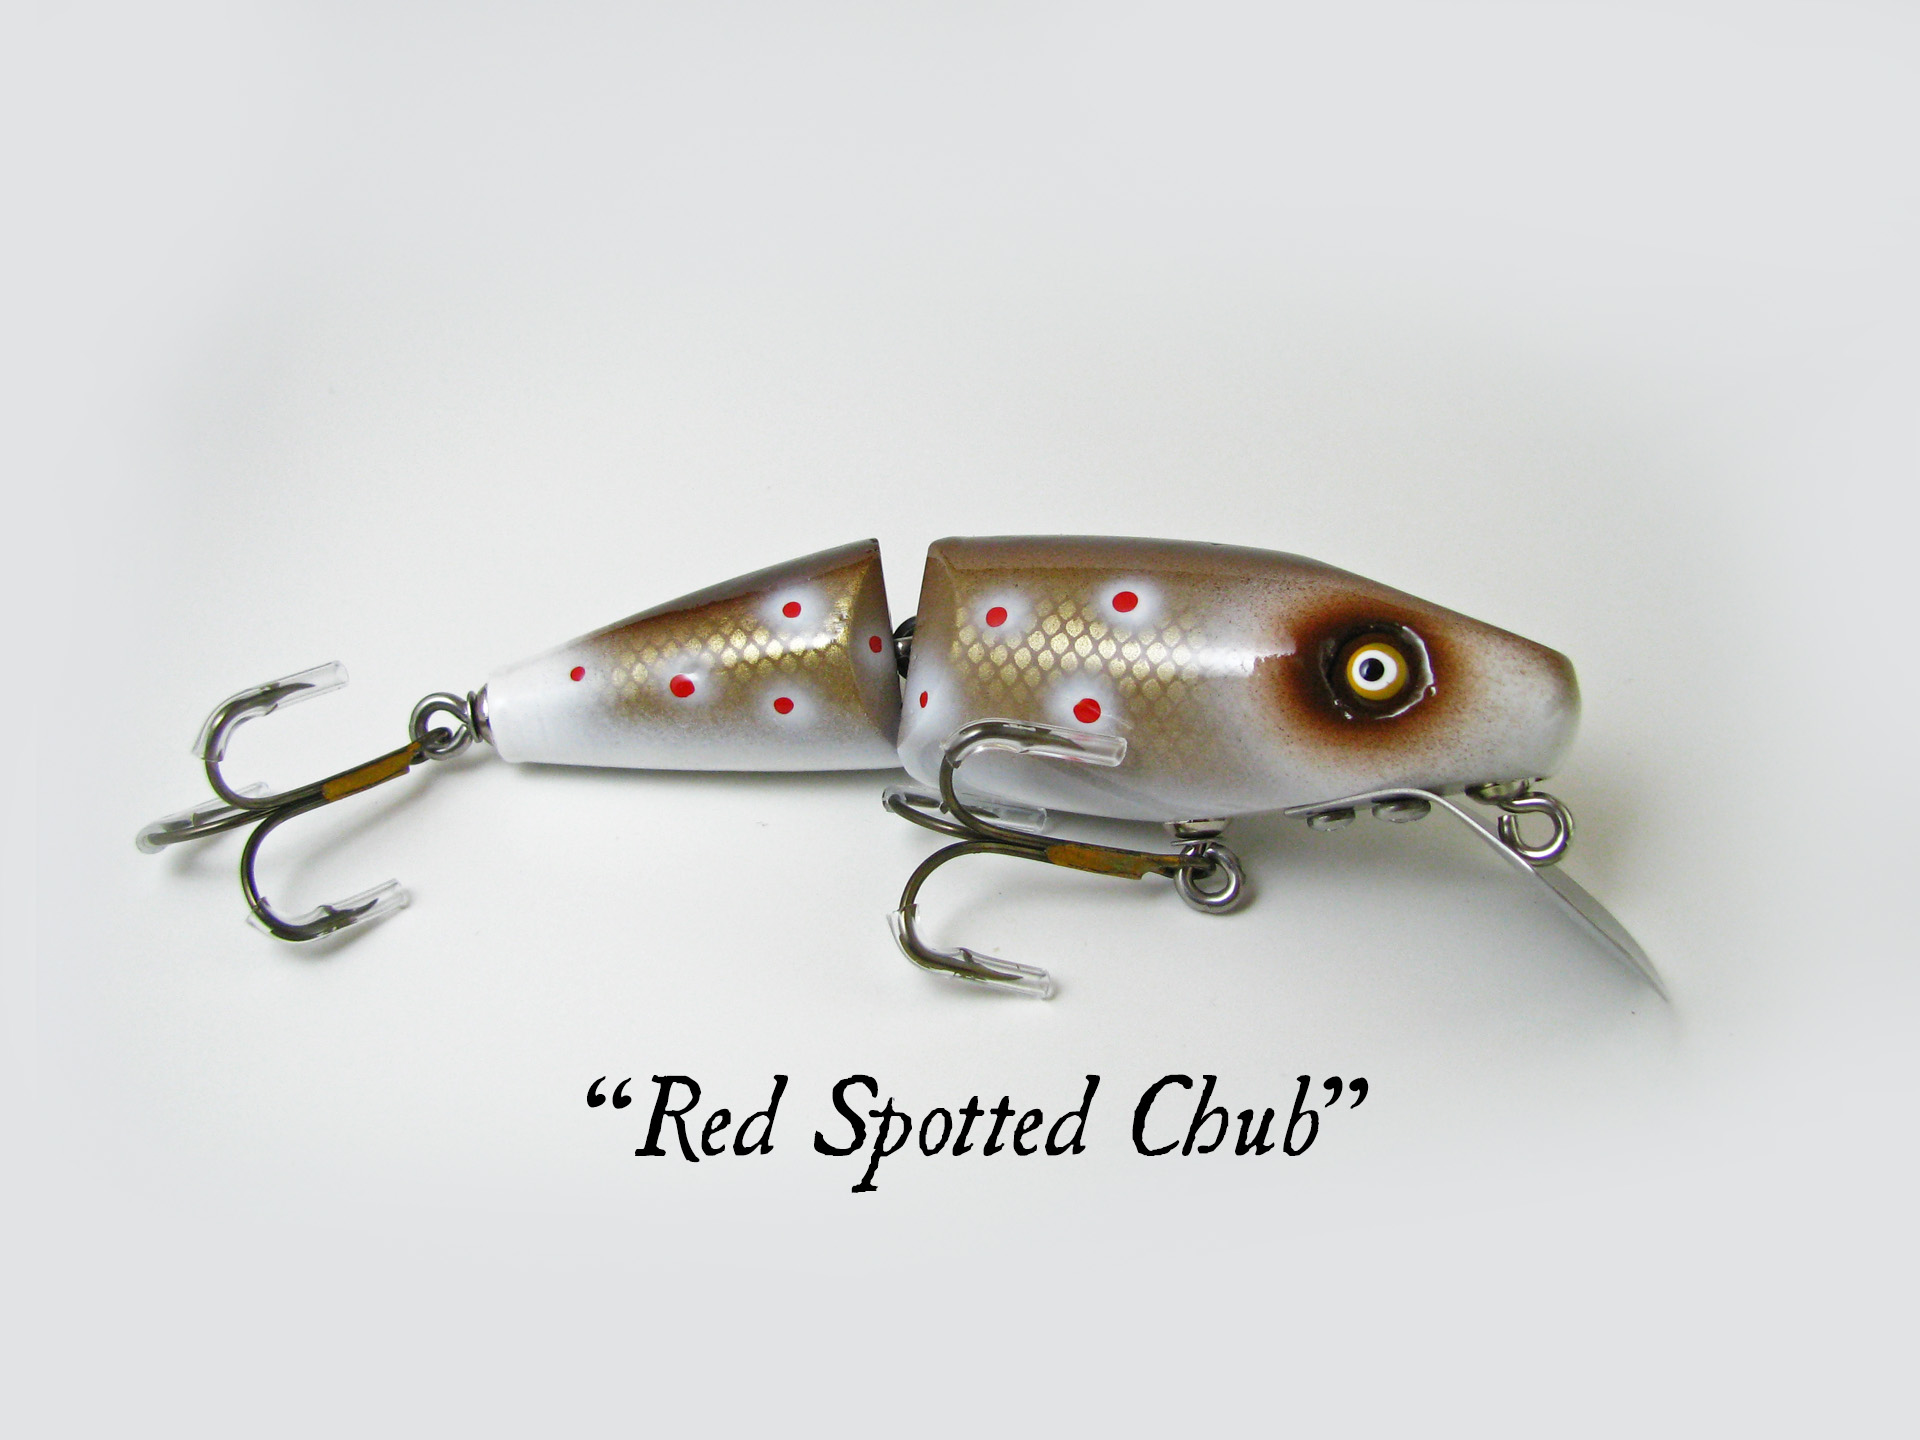 Super Shark_Red Spotted Chub.jpg